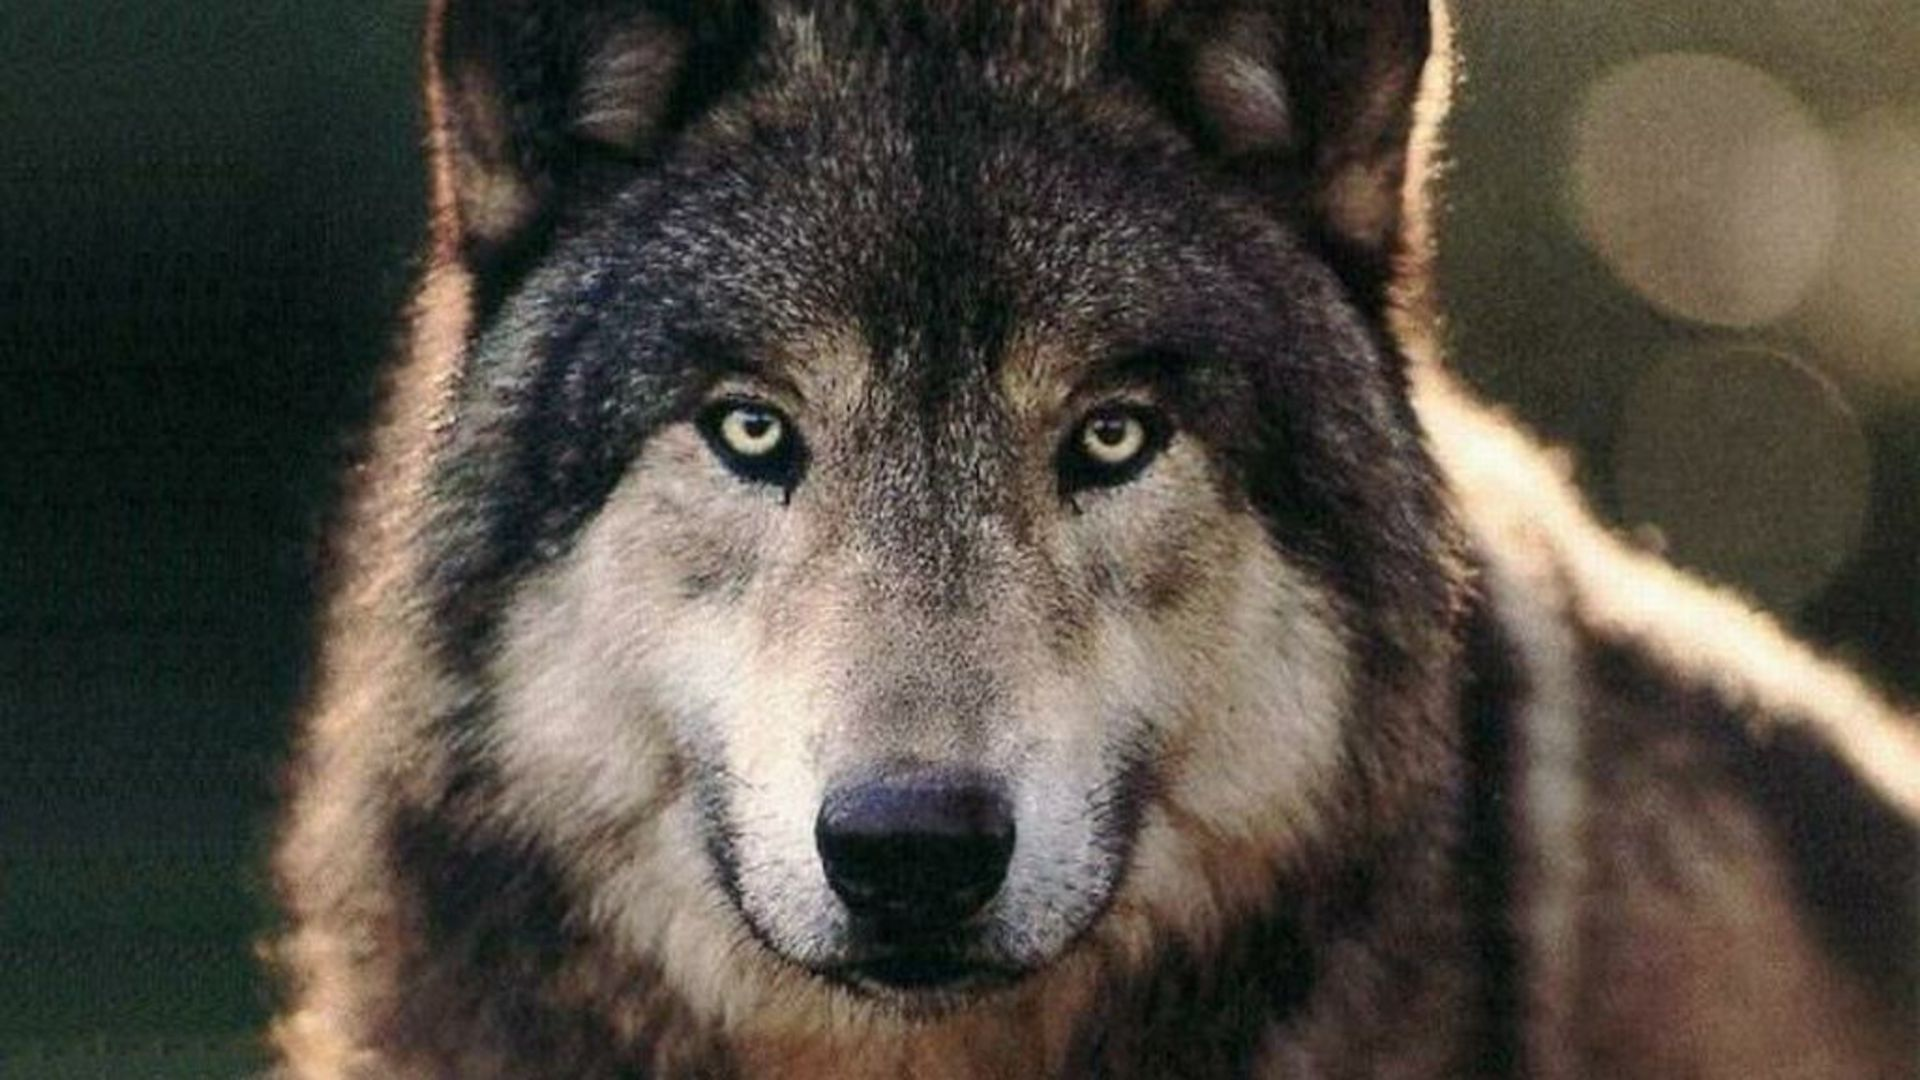 Hd wallpaper wolf - The Wolf Wallpapers Hd Wallpapers 1920 1080 Wolves Hd Wallpapers 45 Wallpapers